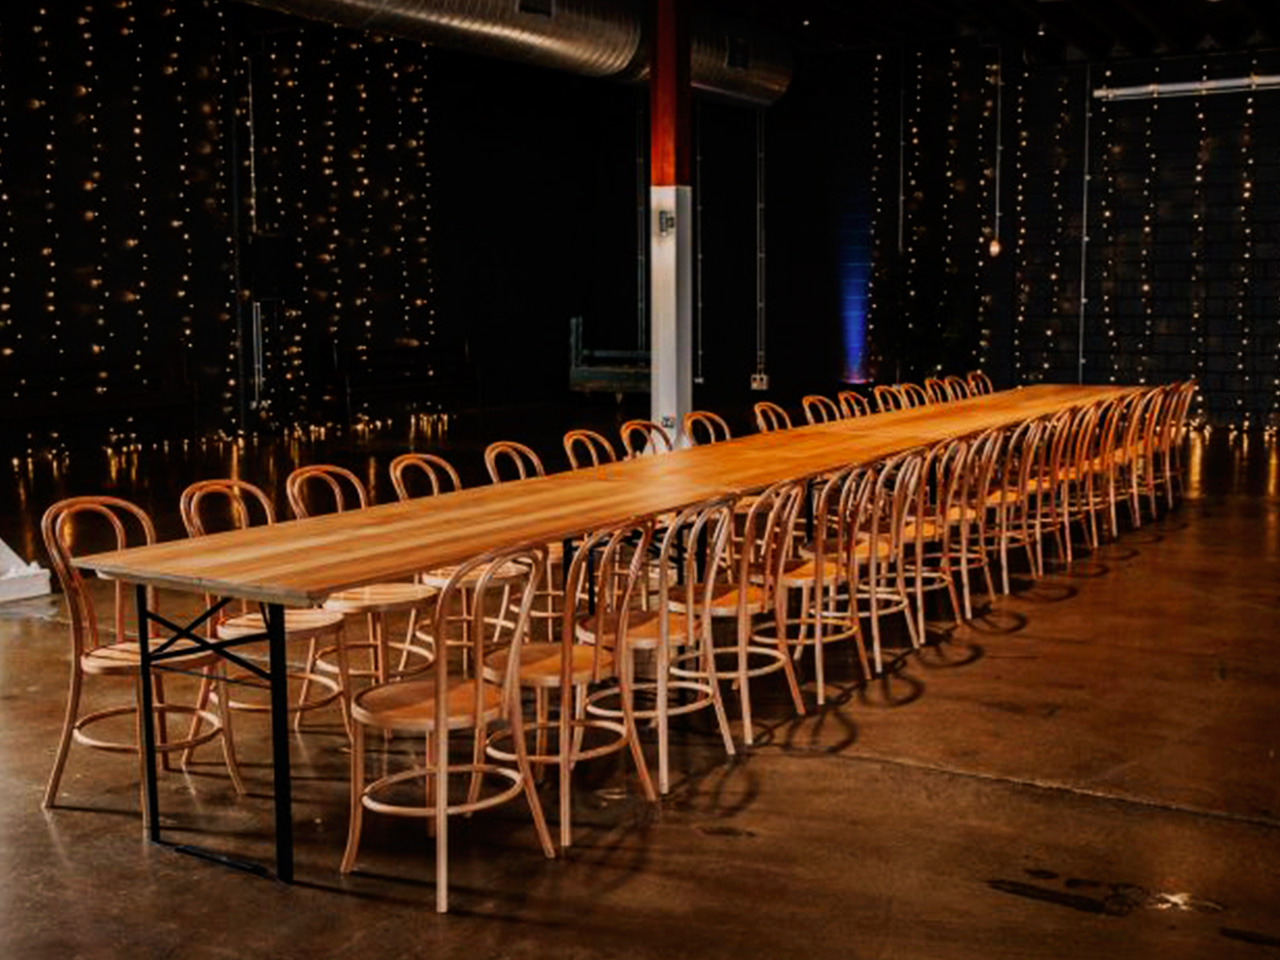 Long Table with Chairs Inside The Function room With String Lights On The Wall